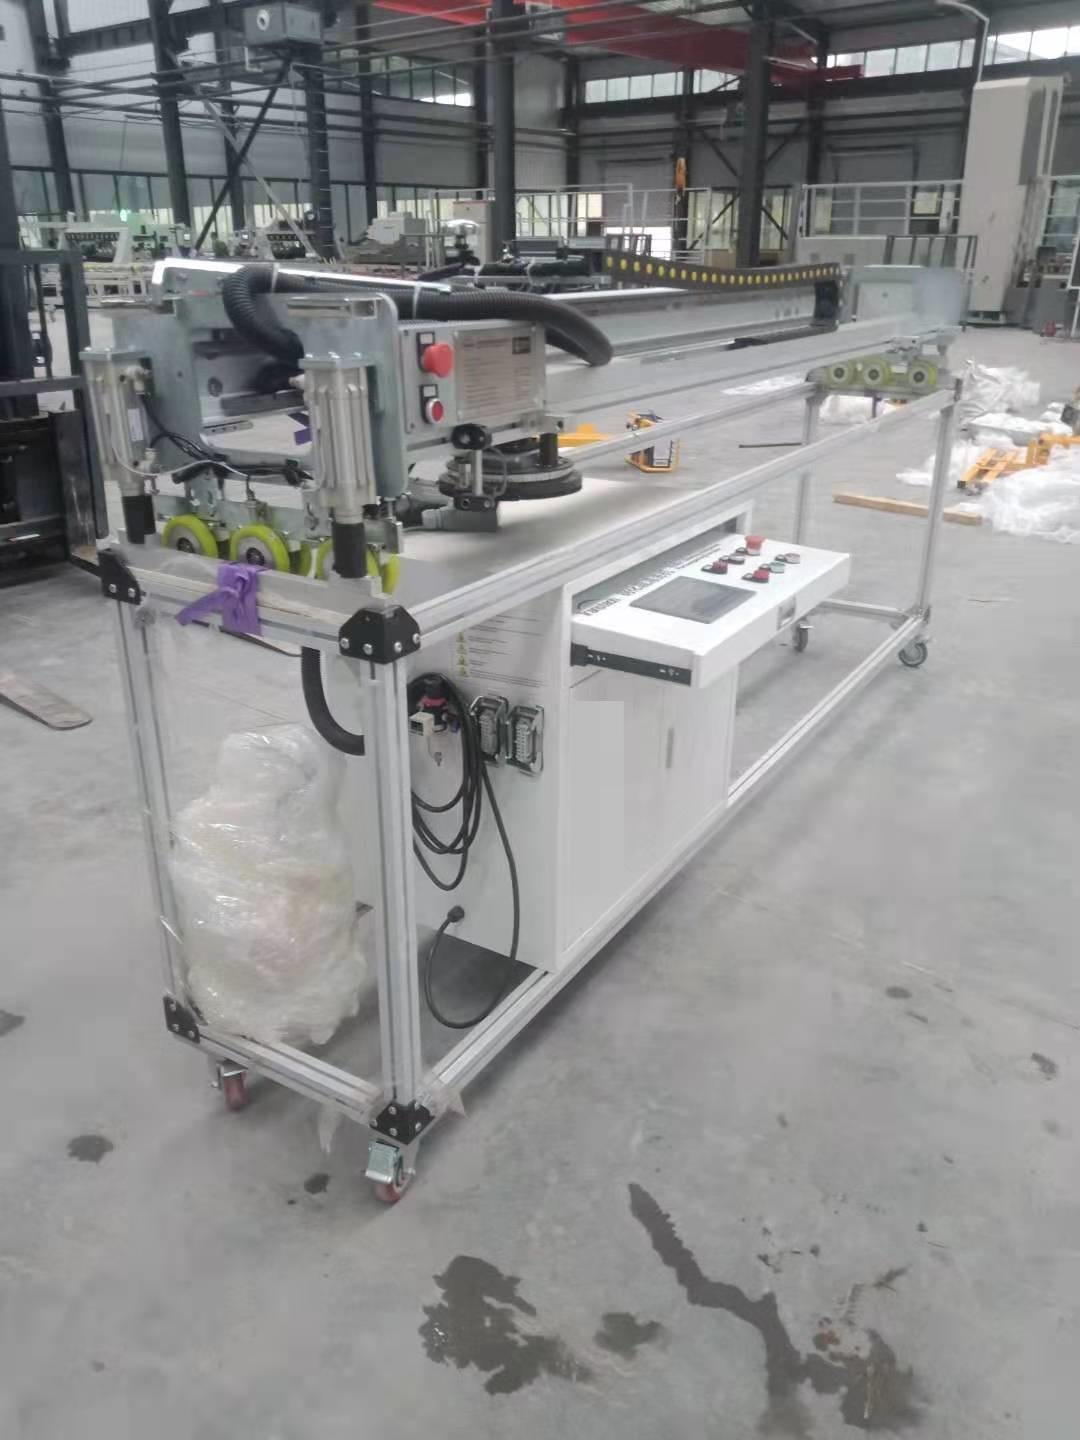 Ceramic Roller Cleaning Machine,Glass Toughening Furnace Roller Cleaning Machine ,Glass Tempering Funace Roller Cleaner,Ceramic Roller Cleaning Machine Featured Image